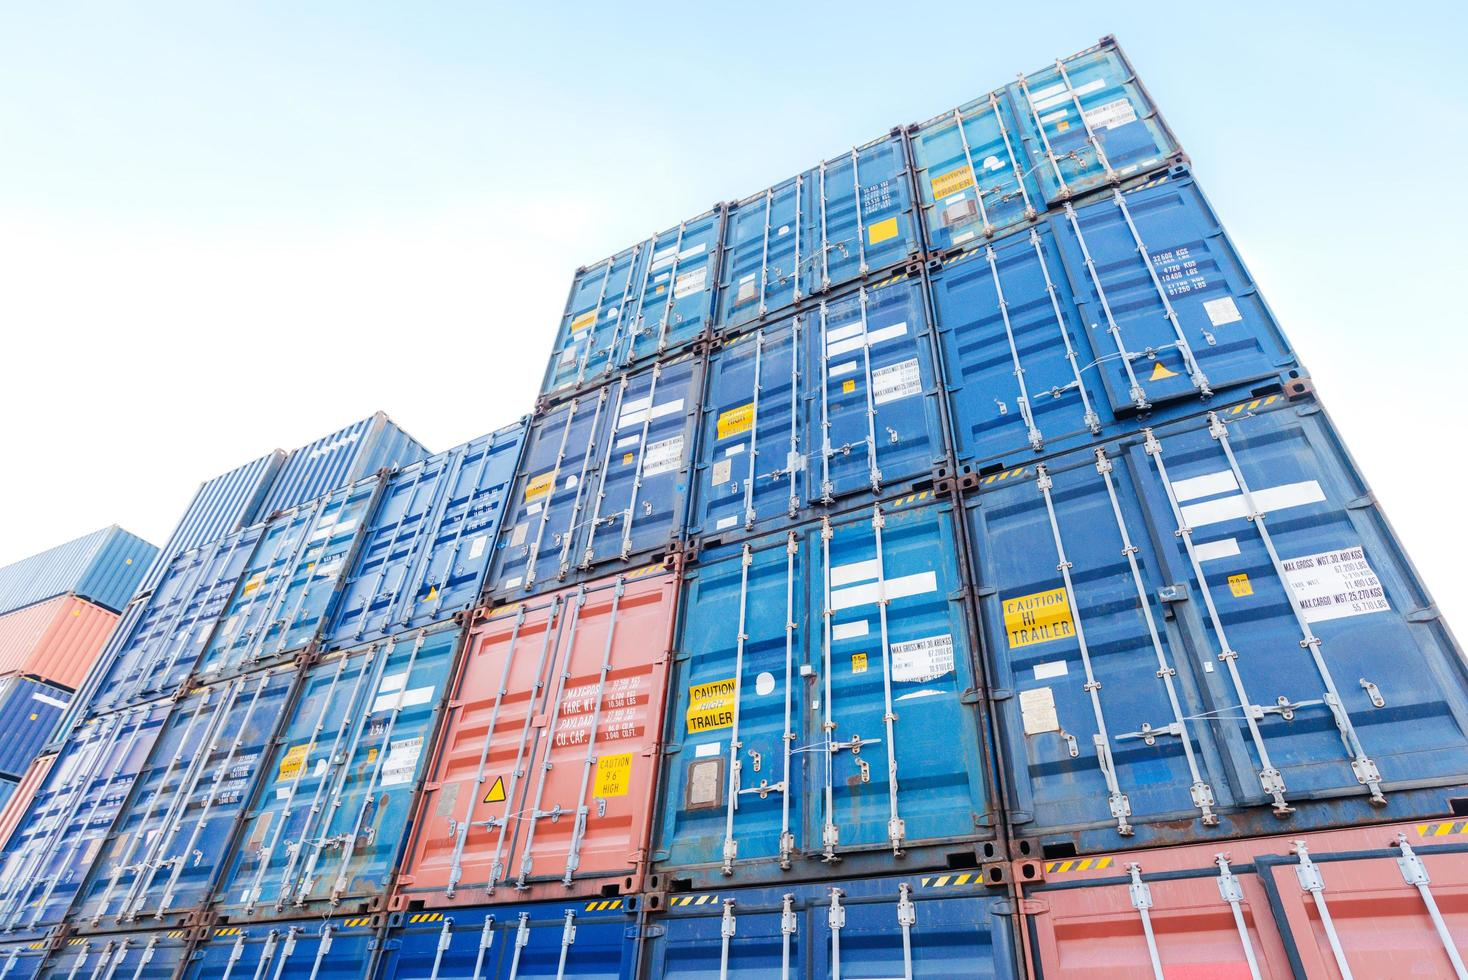 Stack of container boxes in shipyard photo